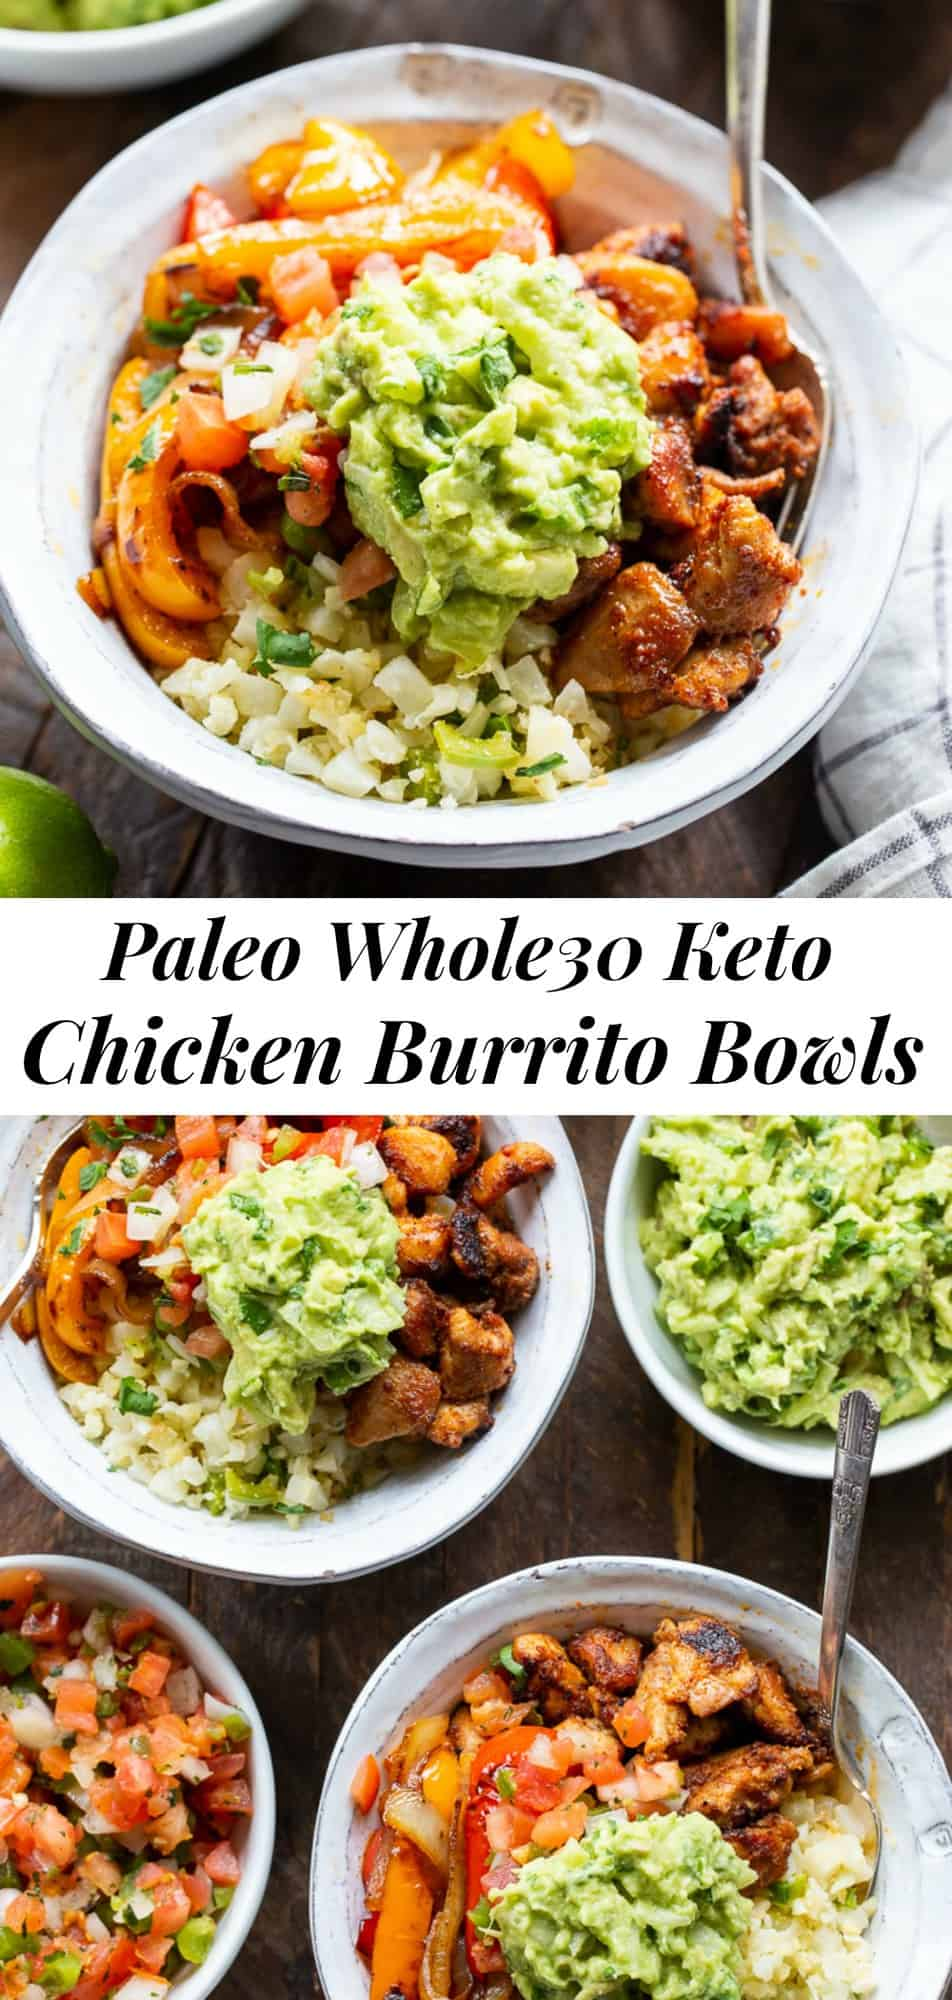 These Paleo Chicken Burrito Bowl are packed with tons of flavor and goodies!  Bite size seasoned chicken thighs, zesty cauliflower rice, pepper and onions plus and easy guac make these bowls healthy, filling, and a family favorite.  Whole30 and keto friendly. #whole30 #paleo #keto #burritobowls